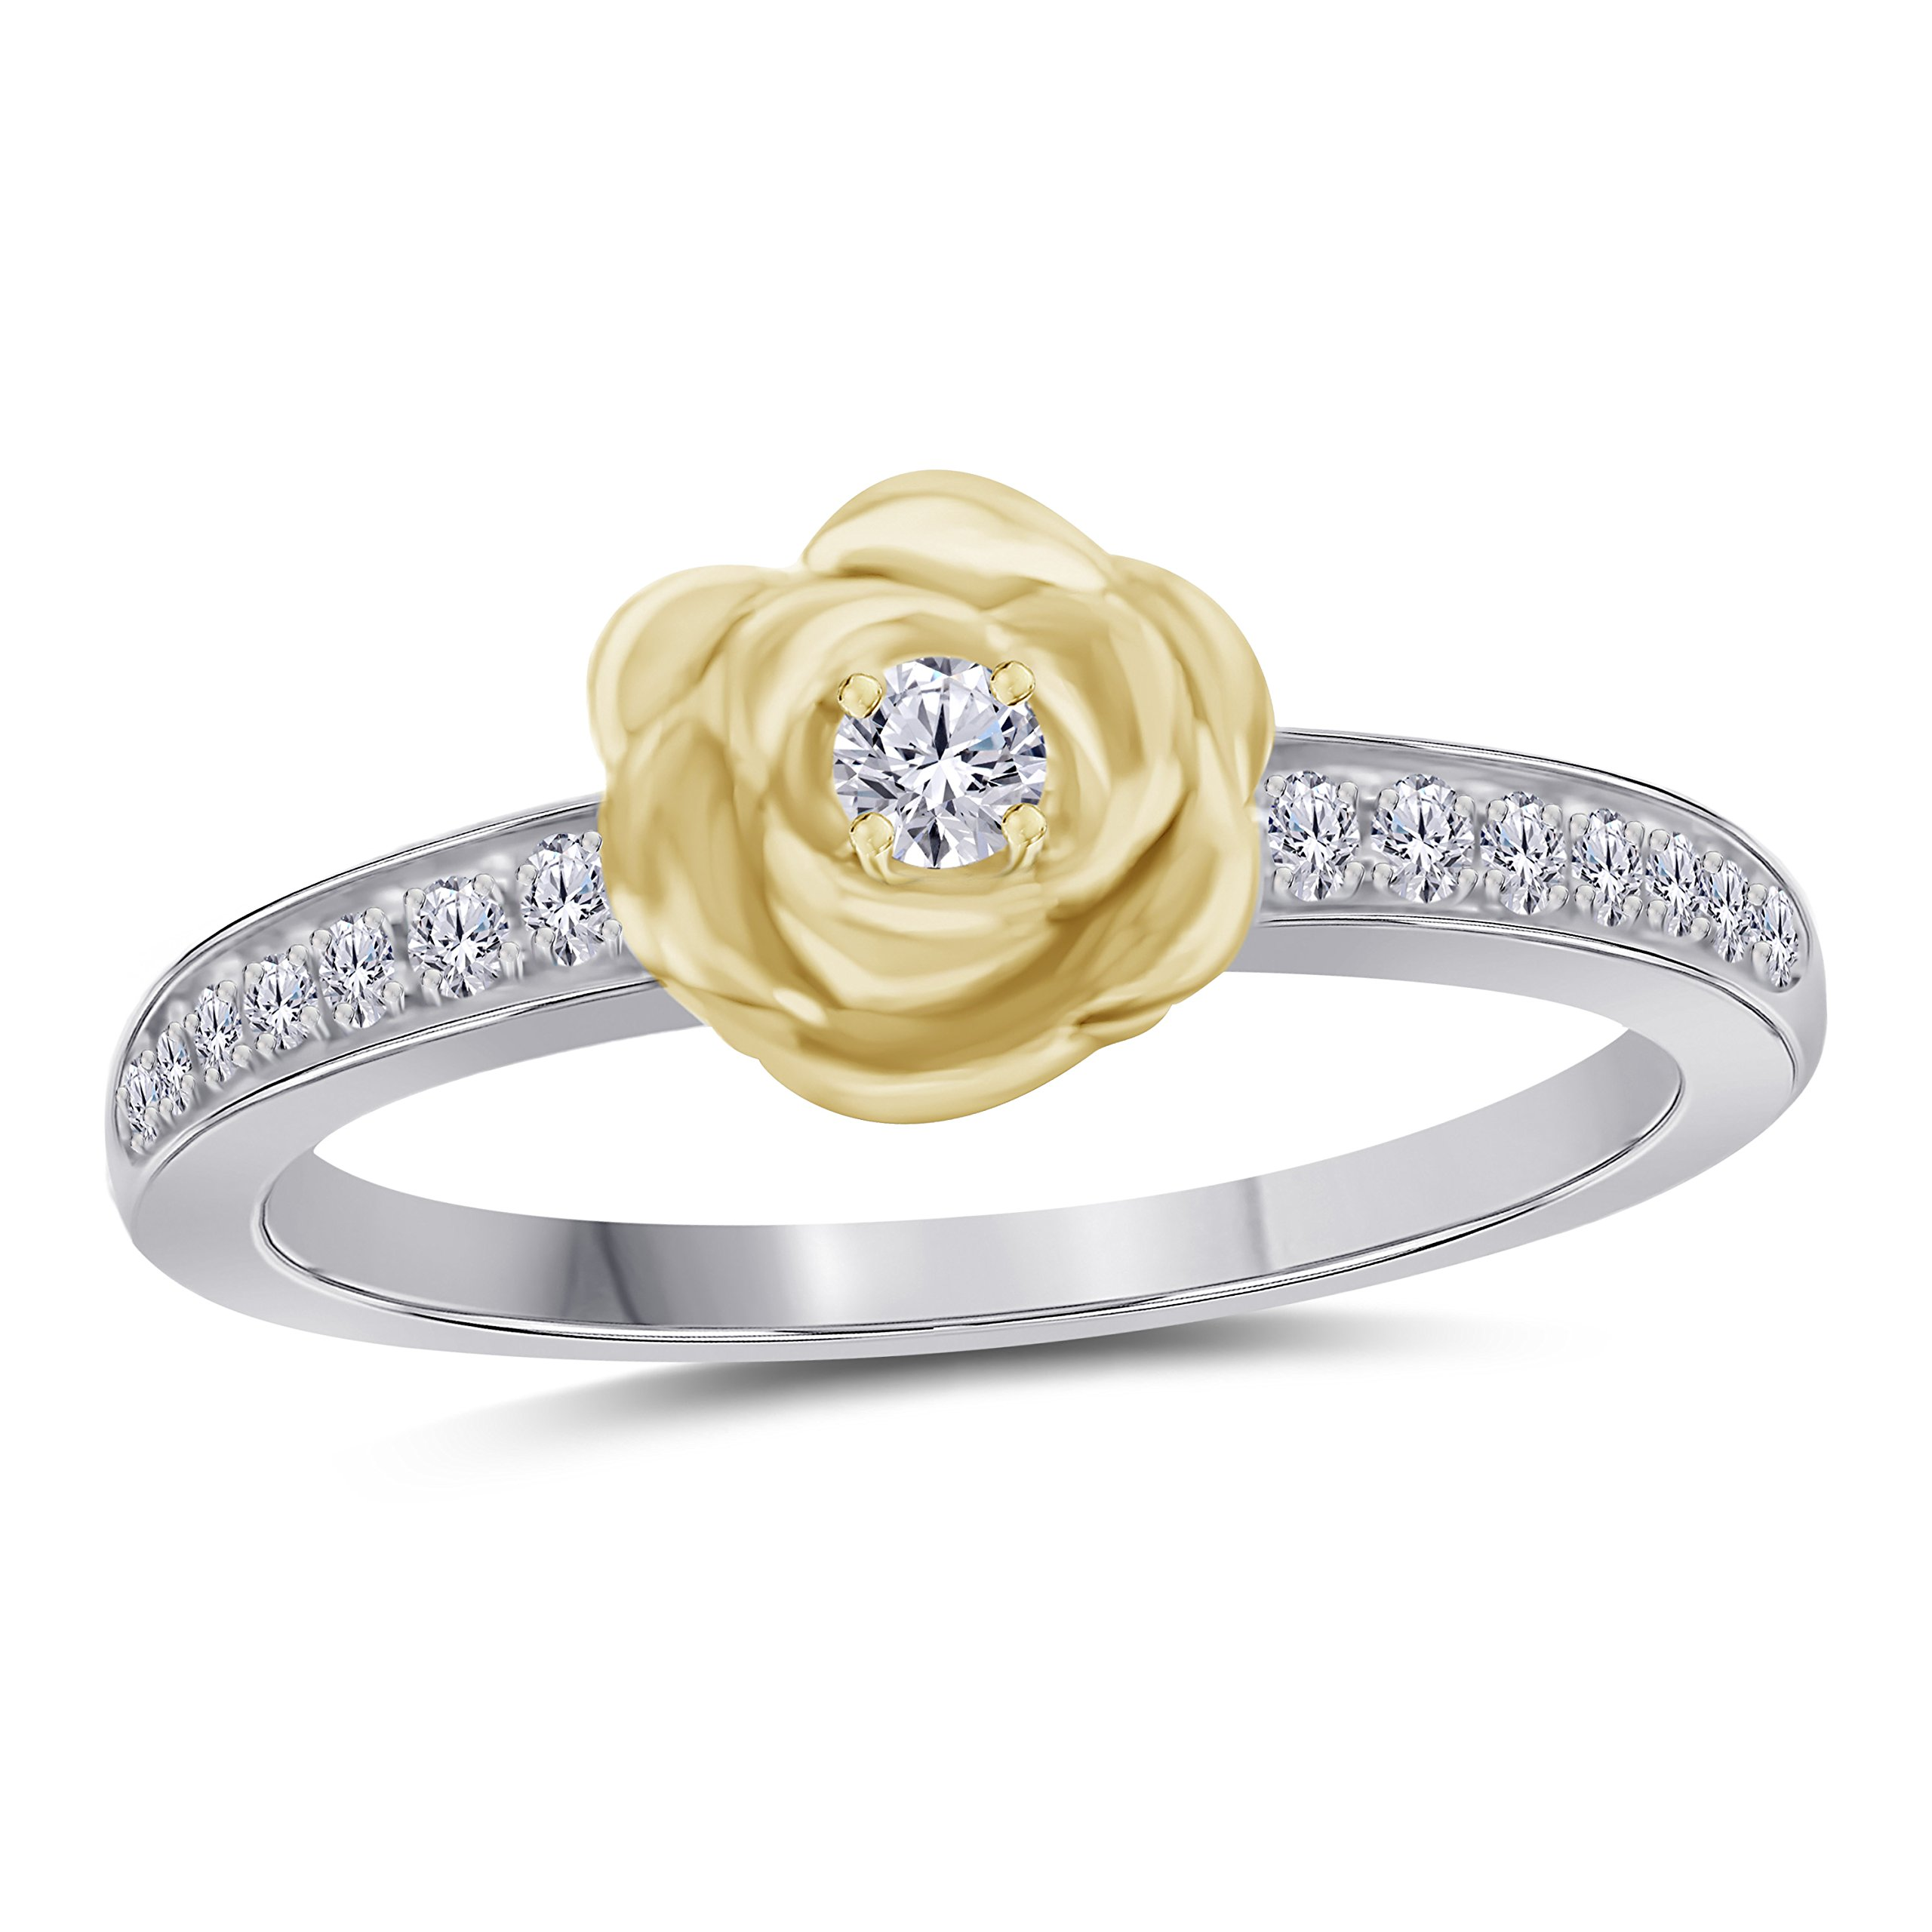 Silver Gems Factory 14K Two-Tone Gold Over Round Cut White Cubic Zirconia Yellow Rose Lotus Flower Ring Bridal Jewelry